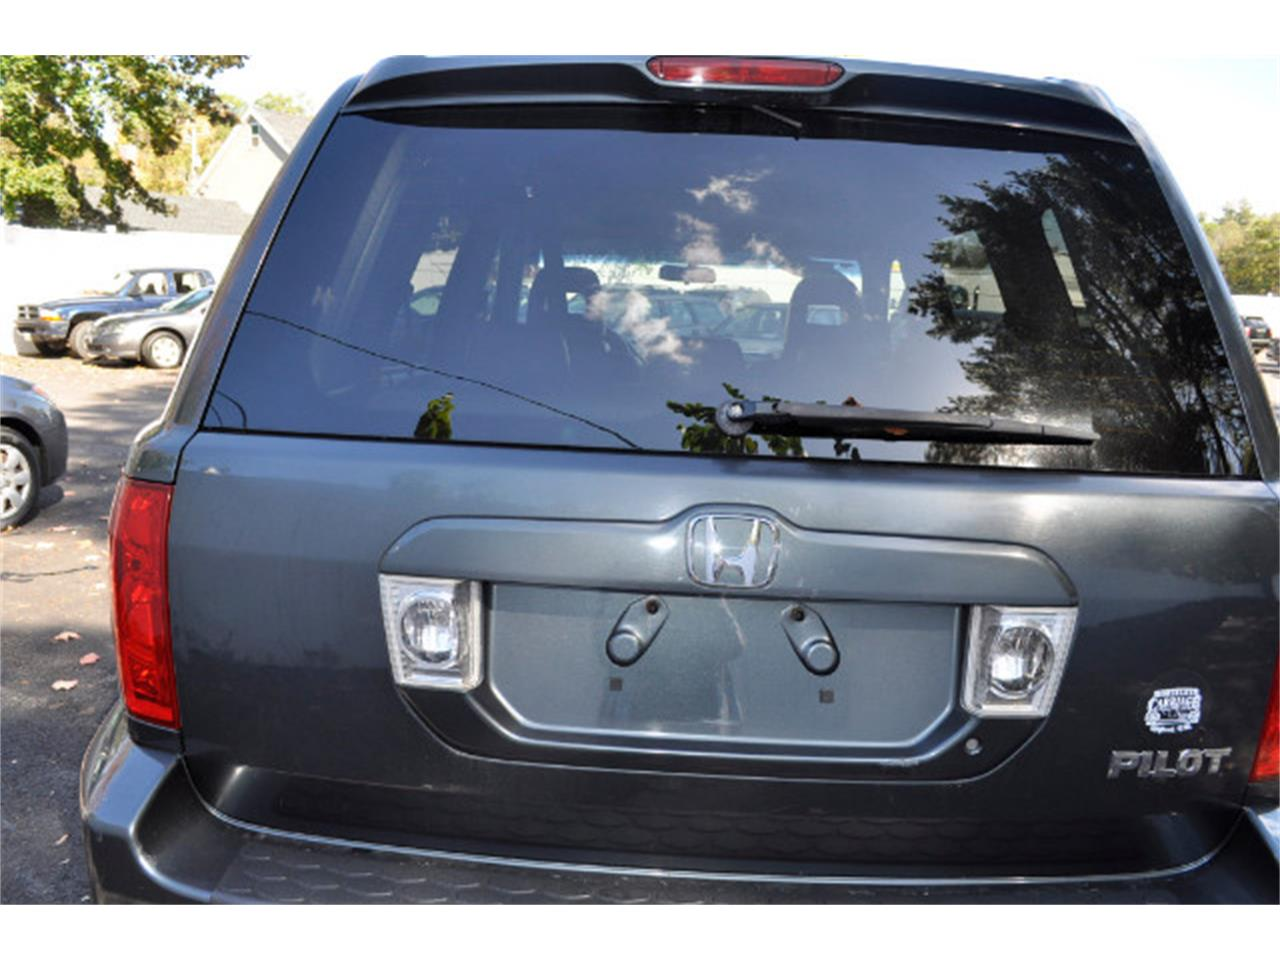 Large Picture of 2005 Honda Pilot located in Milford New Hampshire - $5,745.00 - M62R